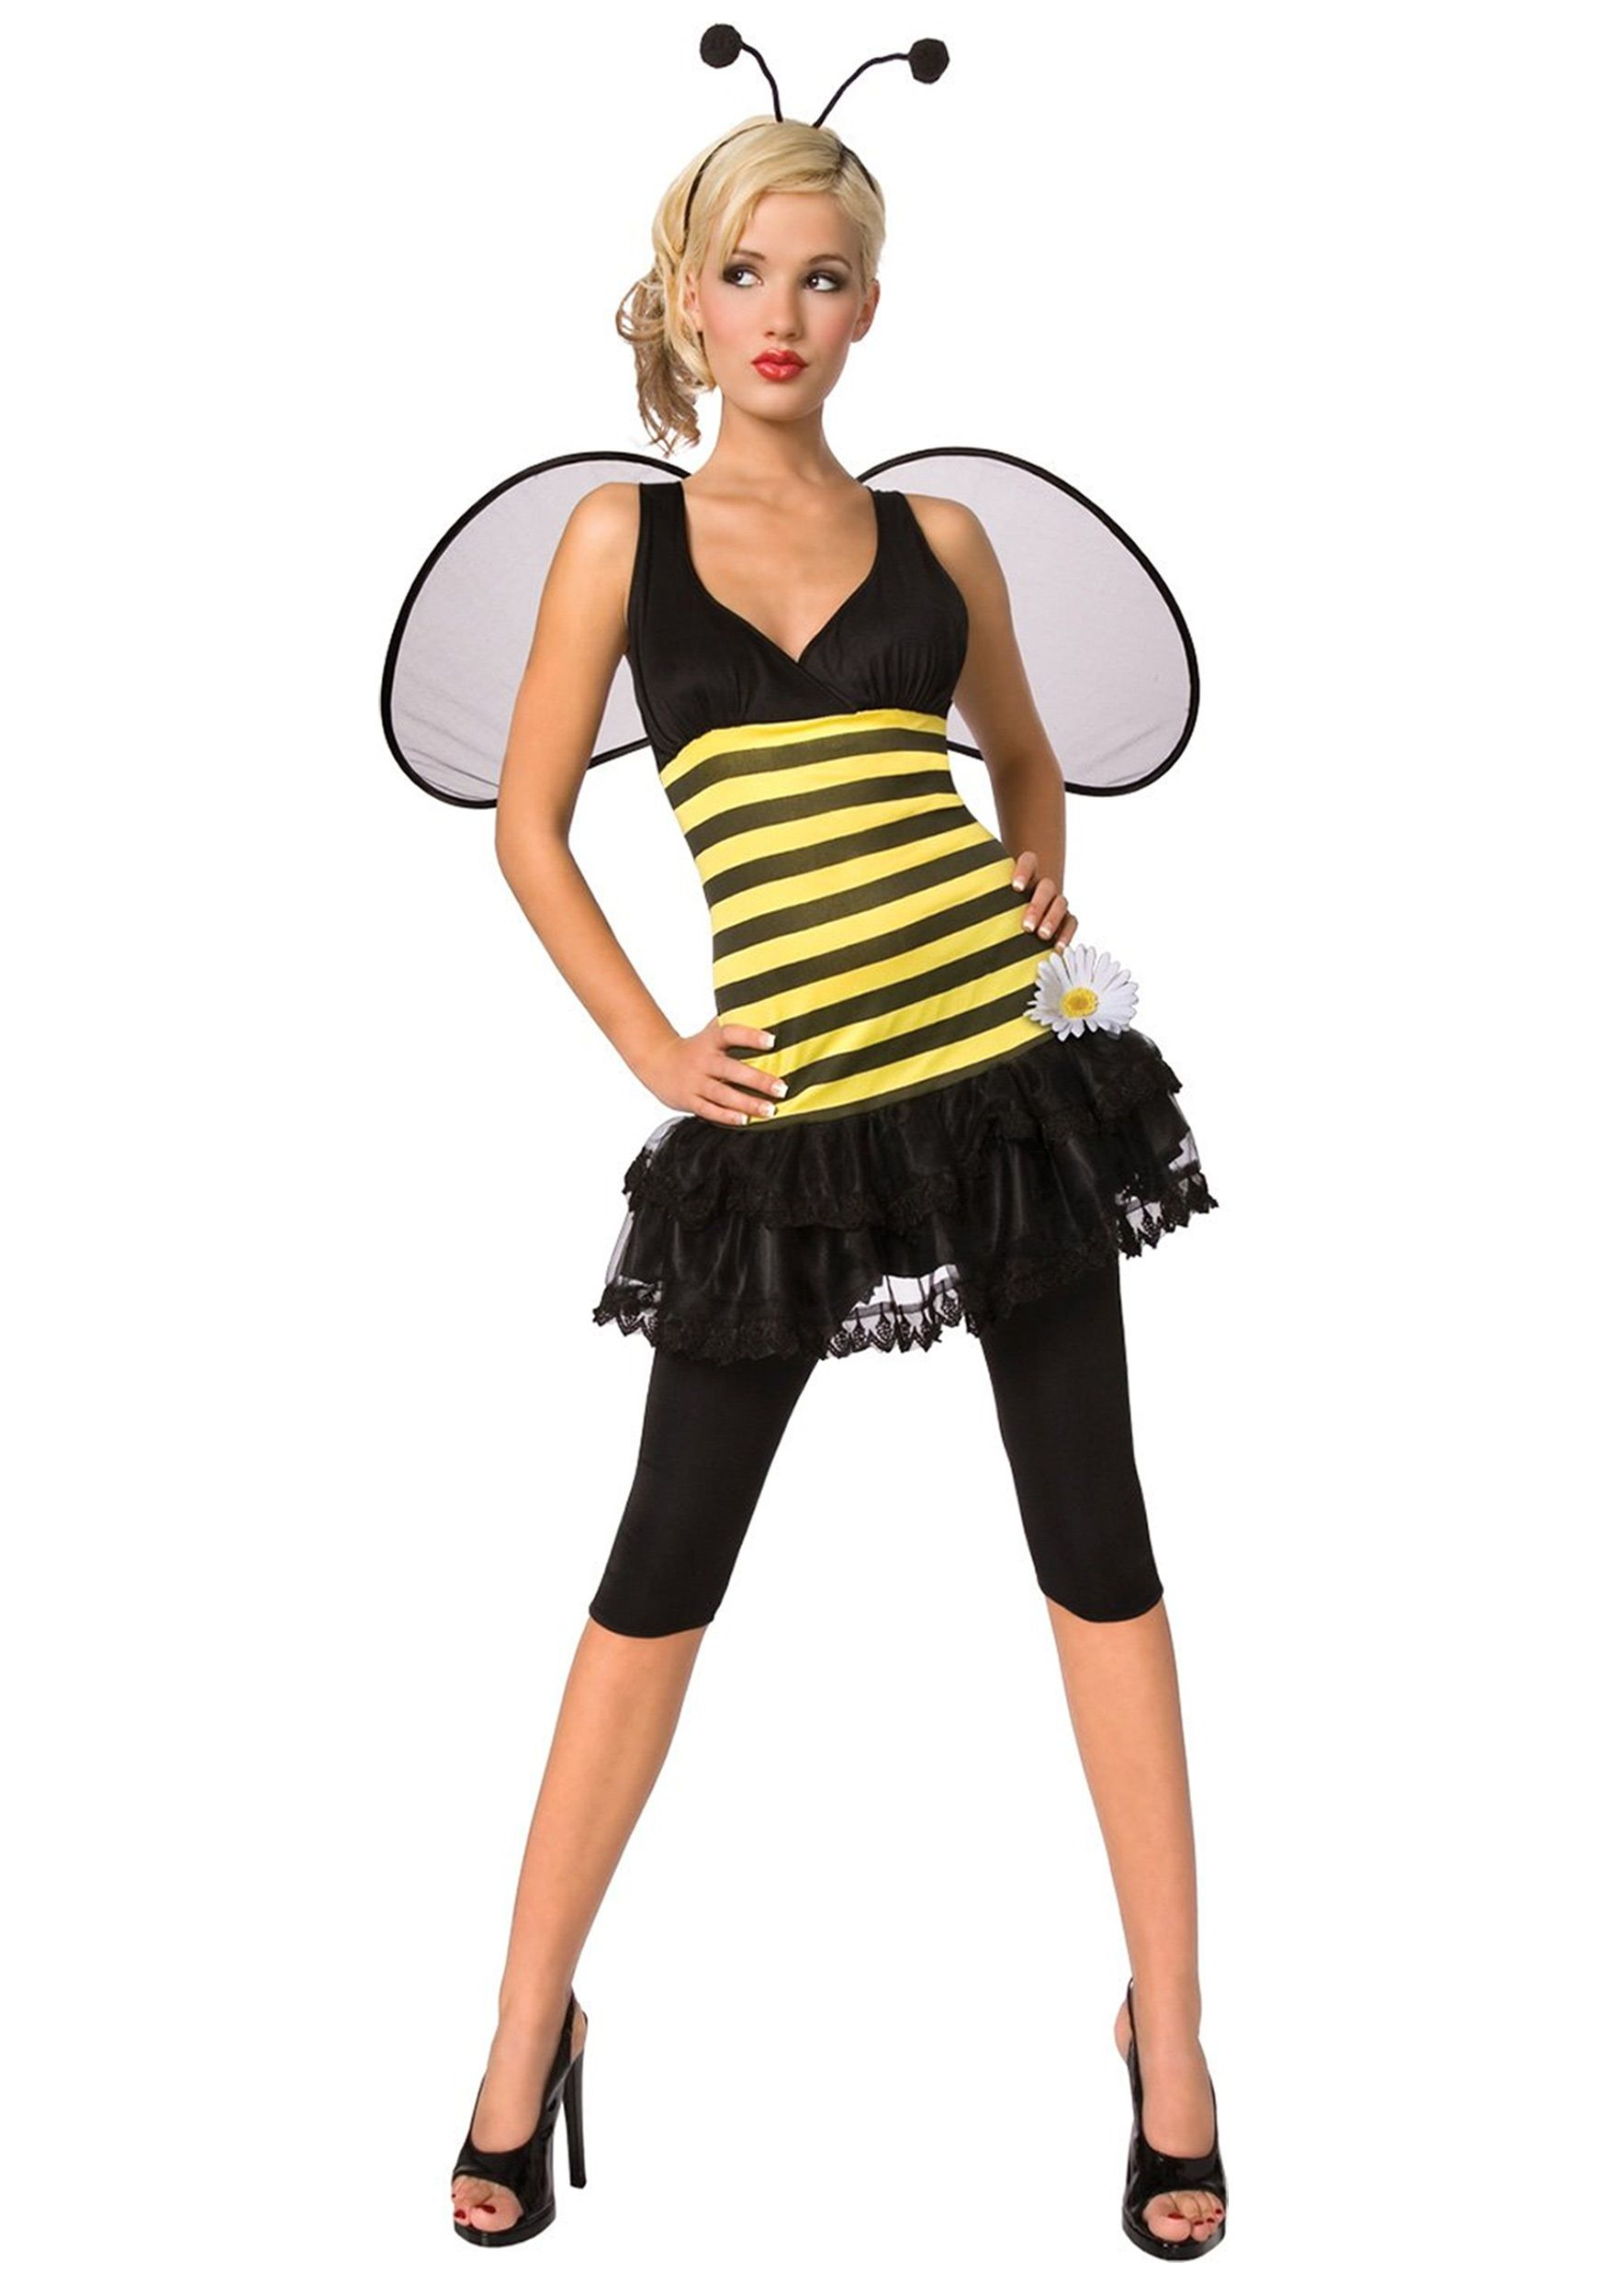 Adult Honey Bee Costume I want to play dress up